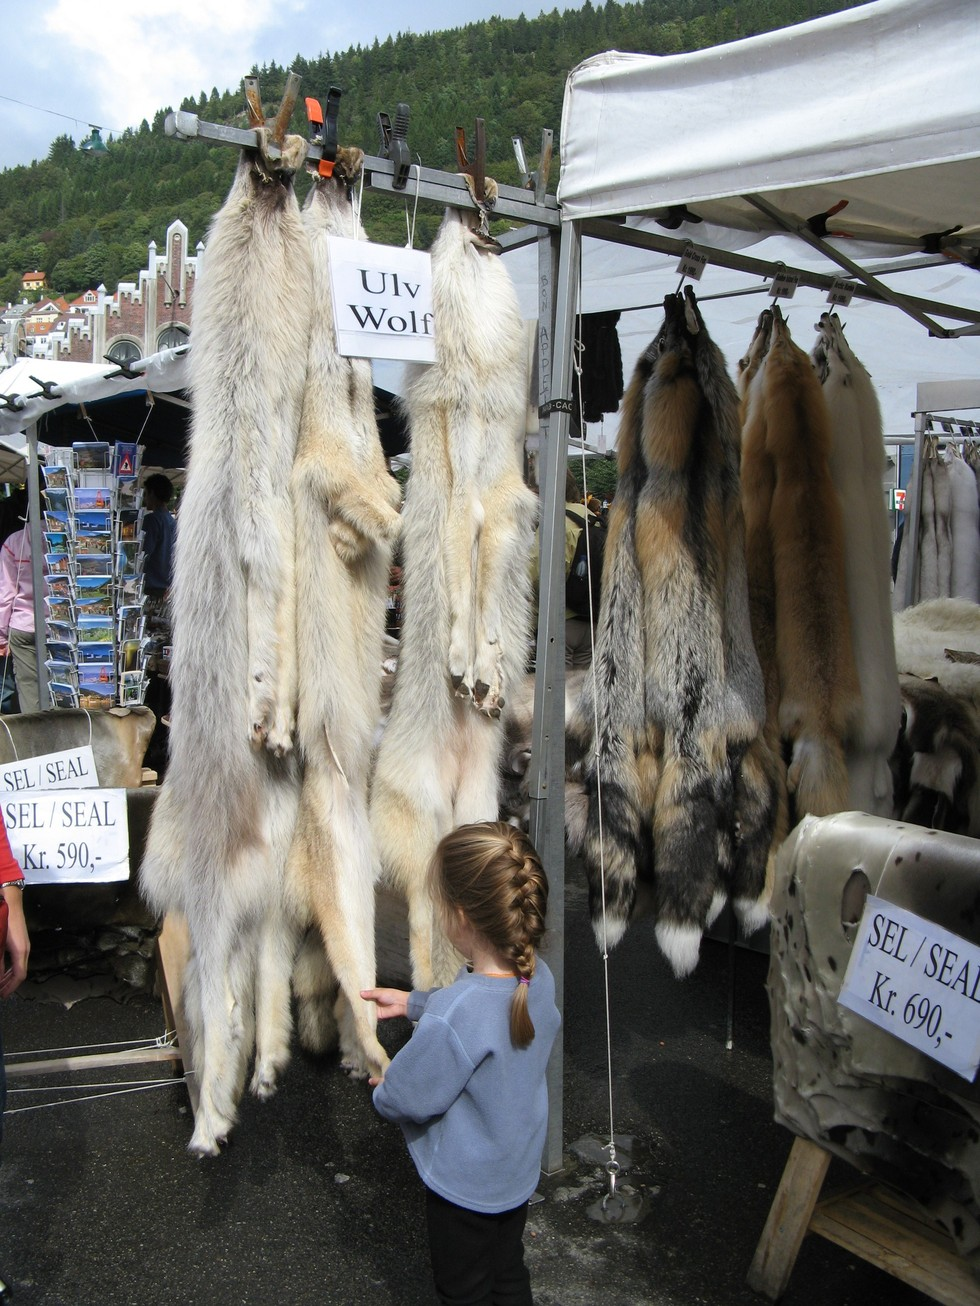 Wolf skins for sale at the Bergen fish market in Norway.Credit: Wikipedia Commons